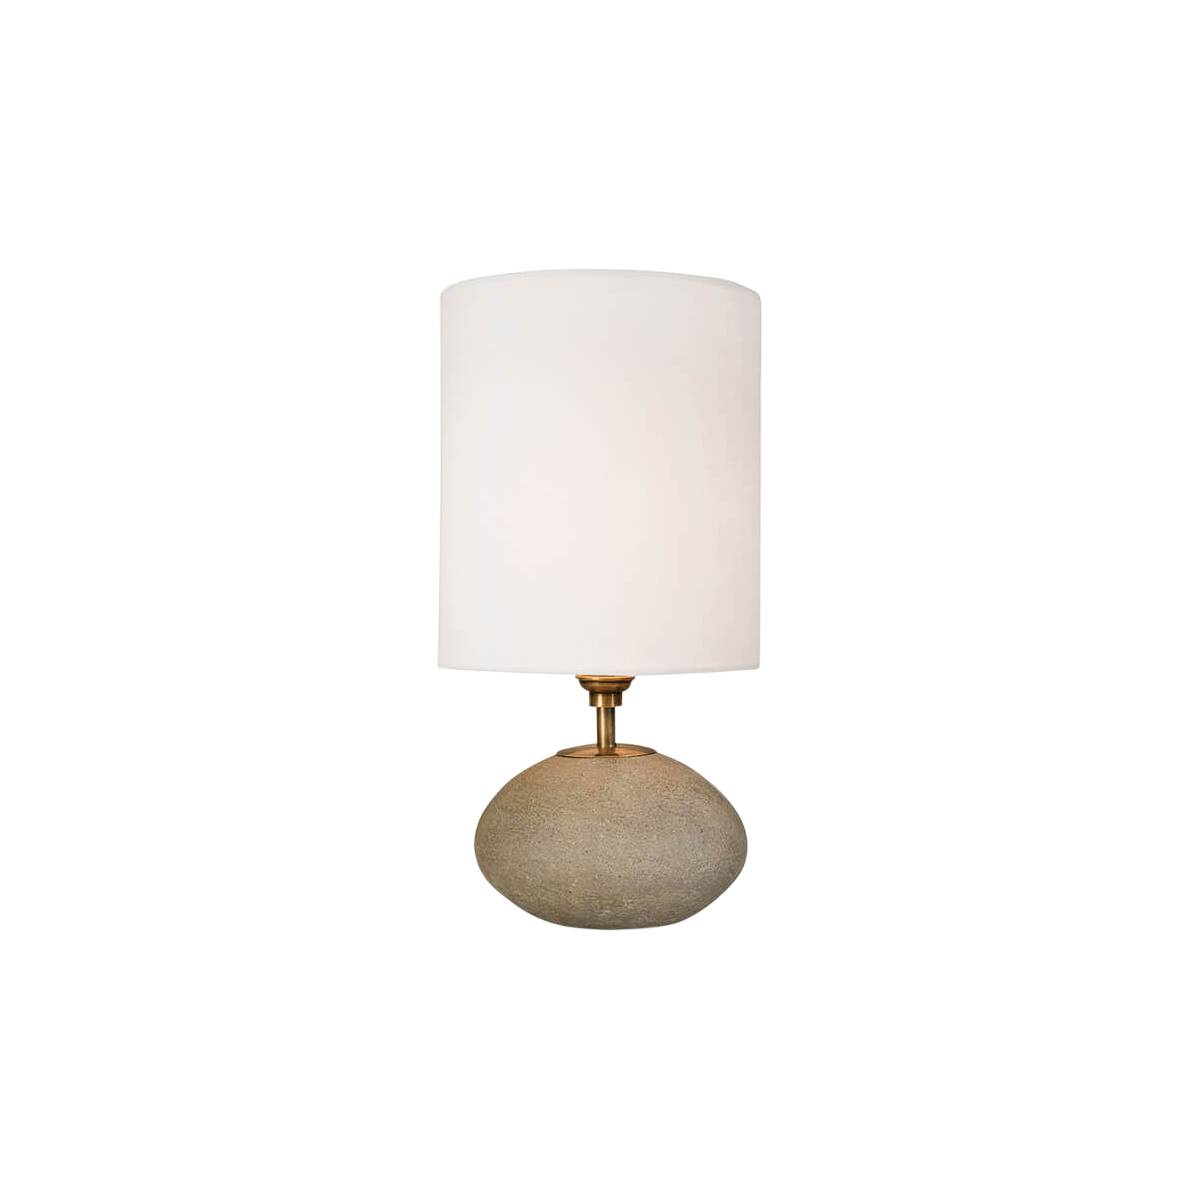 Lamps For Less: 20 In. Or Less, Table Lamps - Page 6